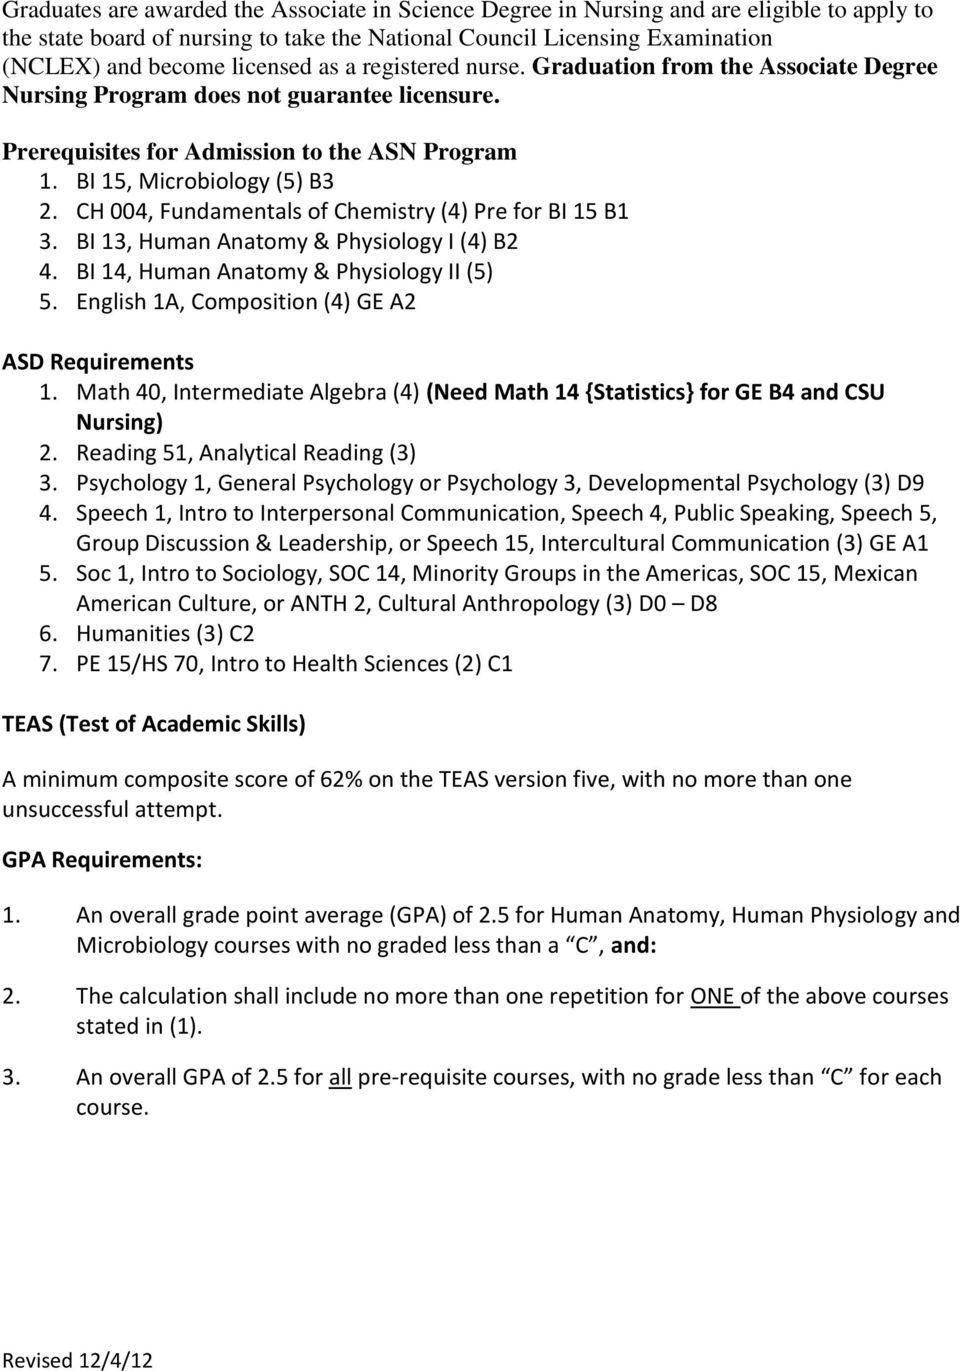 CH 00, Fundamentals of Chemistry () Pre for BI 15 B1 3. BI 13, Human Anatomy & Physiology I () B2. BI 1, Human Anatomy & Physiology II (5) 5. English 1A, Composition () GE A2 ASD Requirements 1.